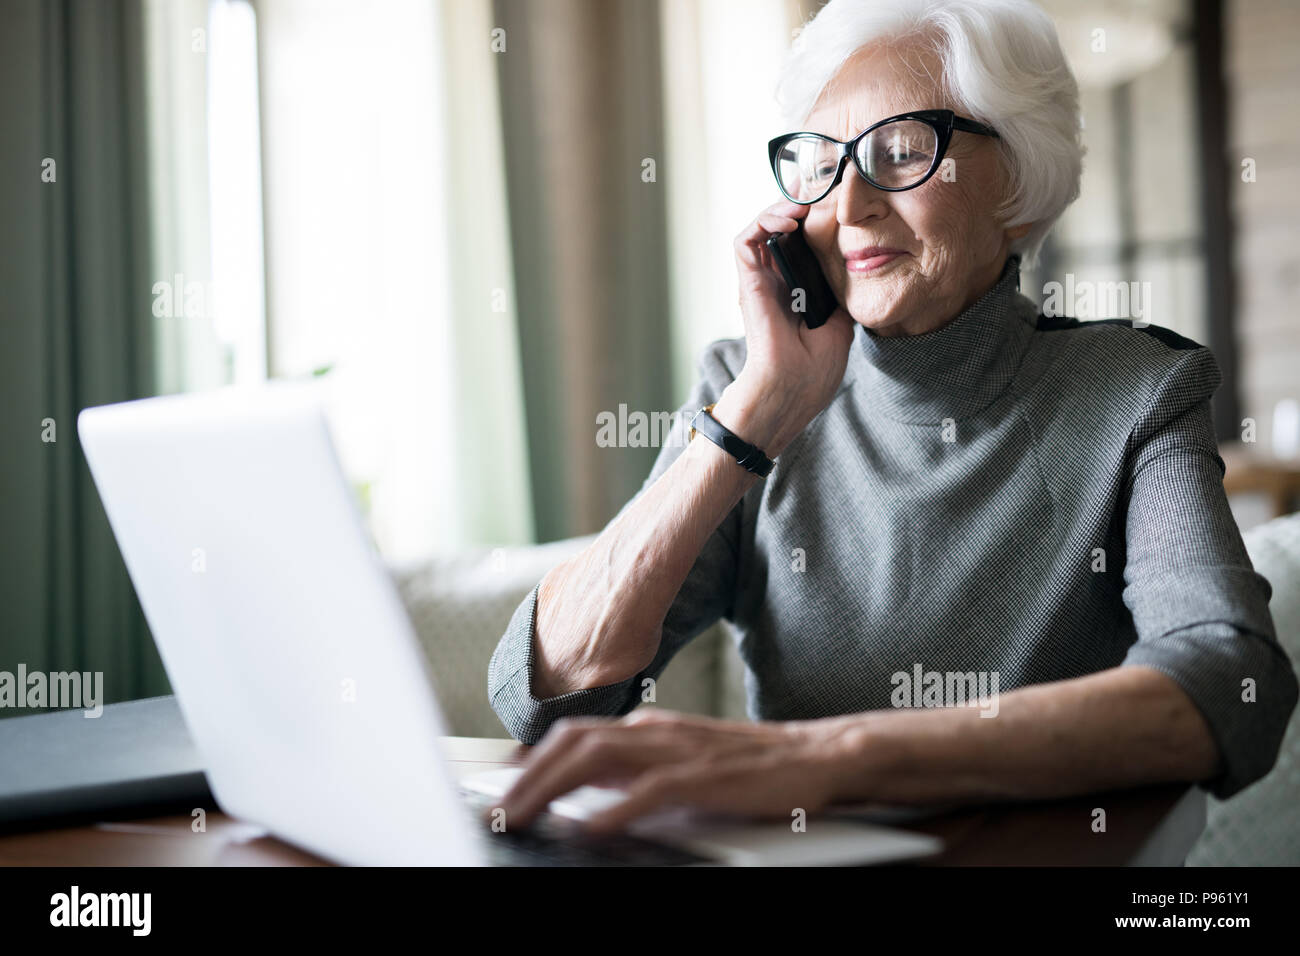 Senior woman having a conversation on the phone - Stock Image